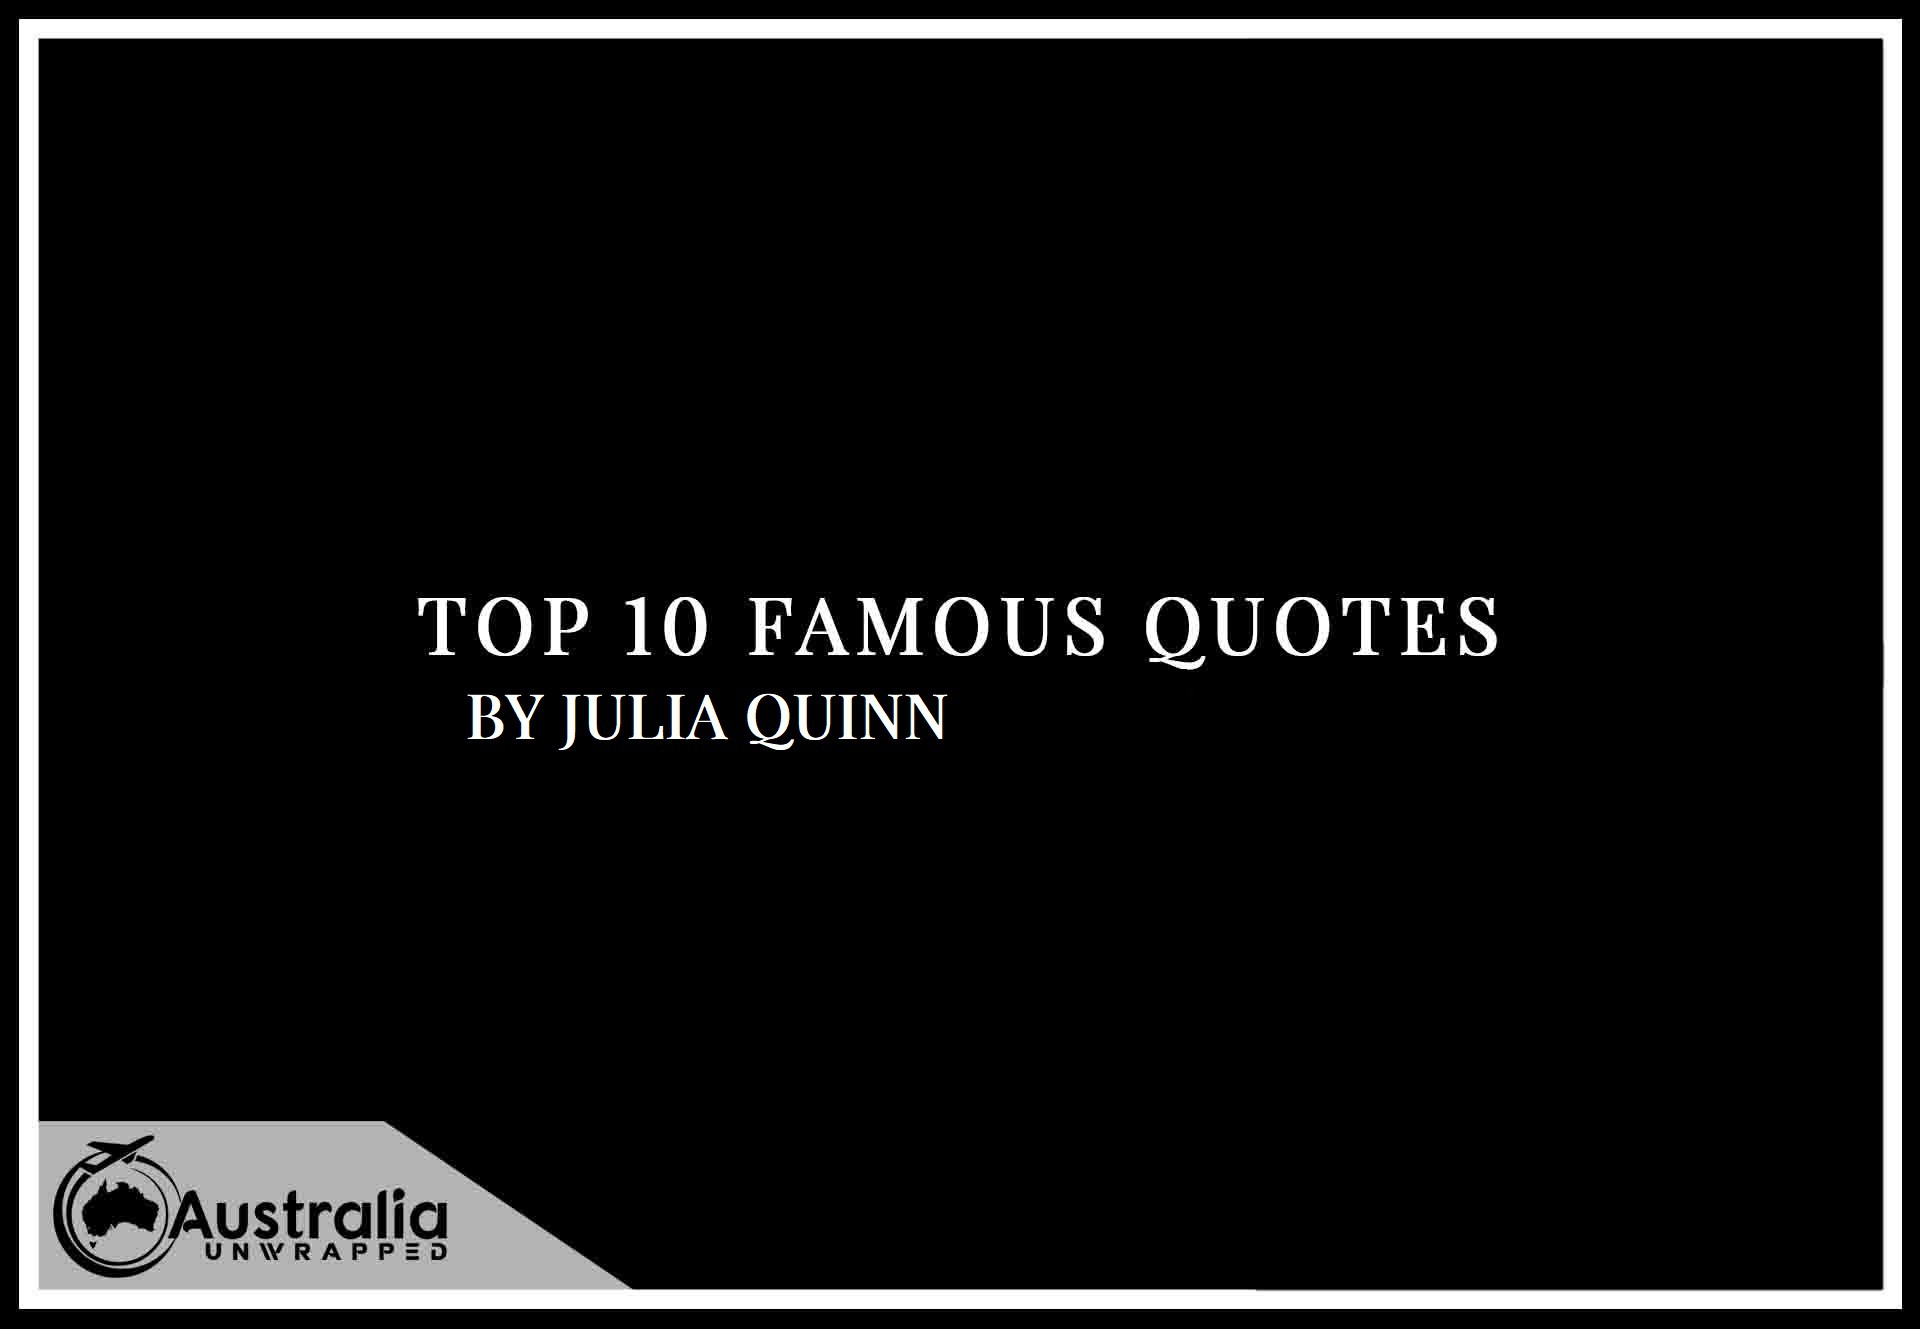 Top 10 Famous Quotes by Author Julia Quinn